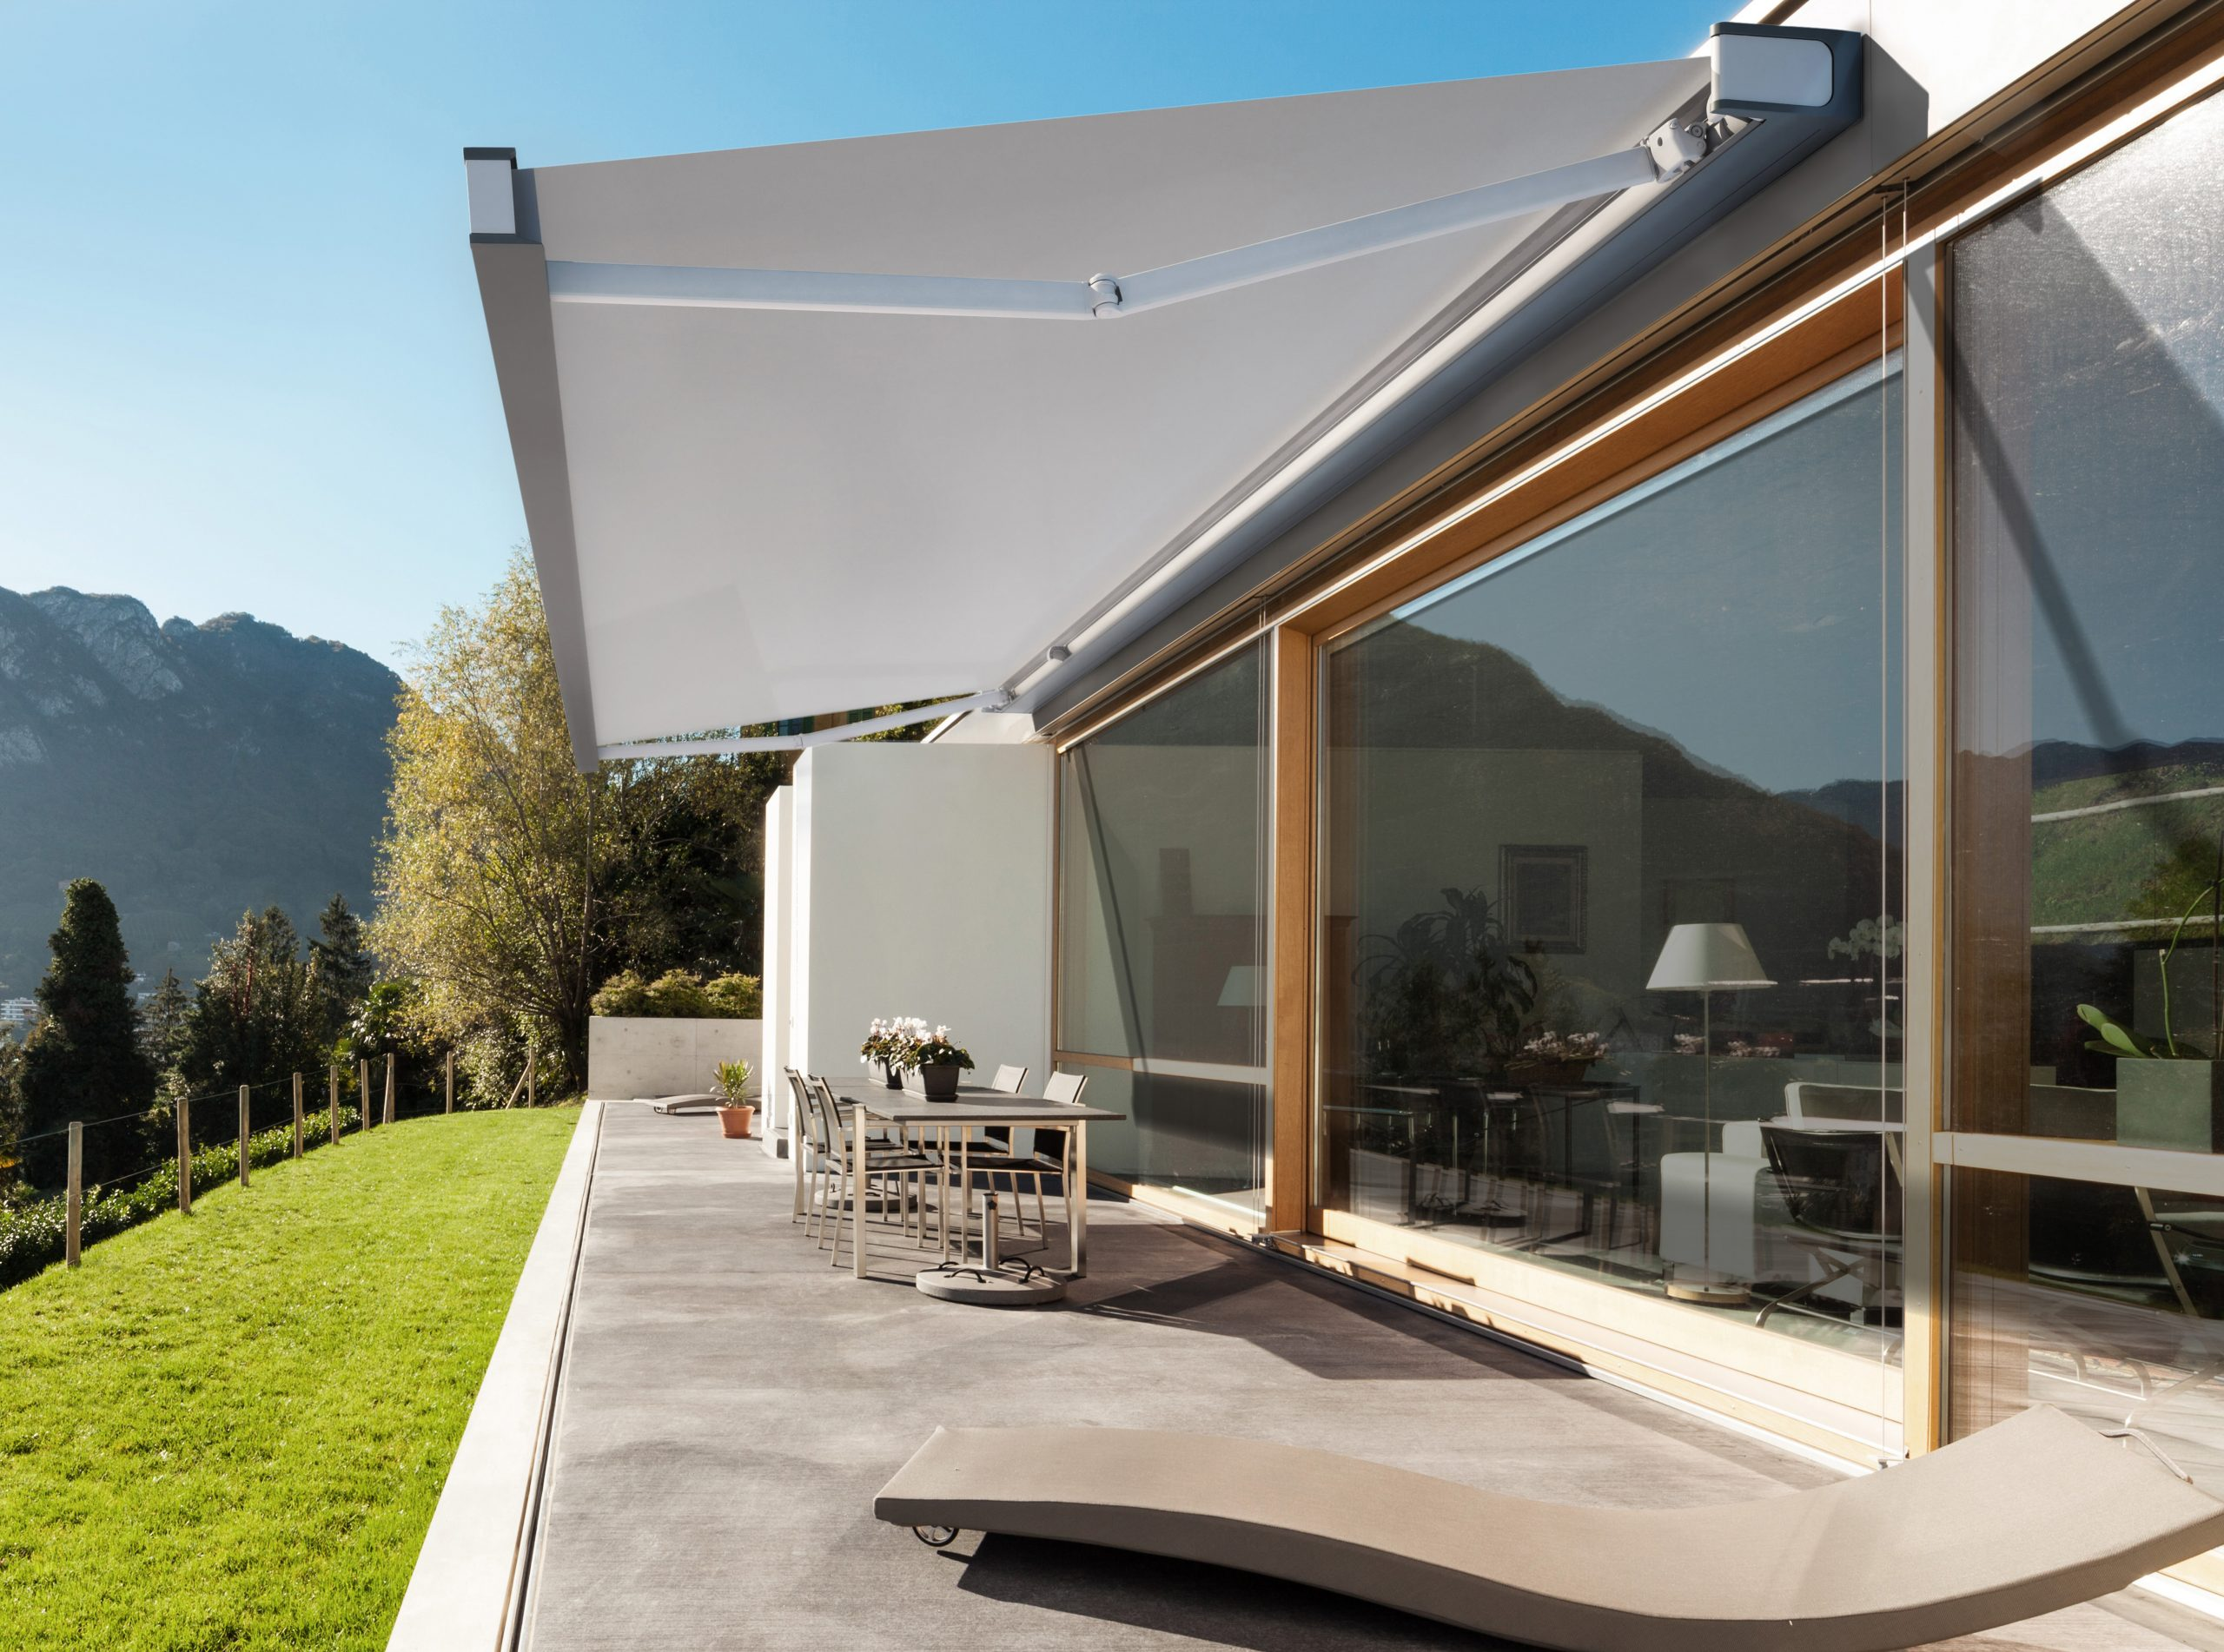 Our new range of awnings and canopies have got you covered this summer